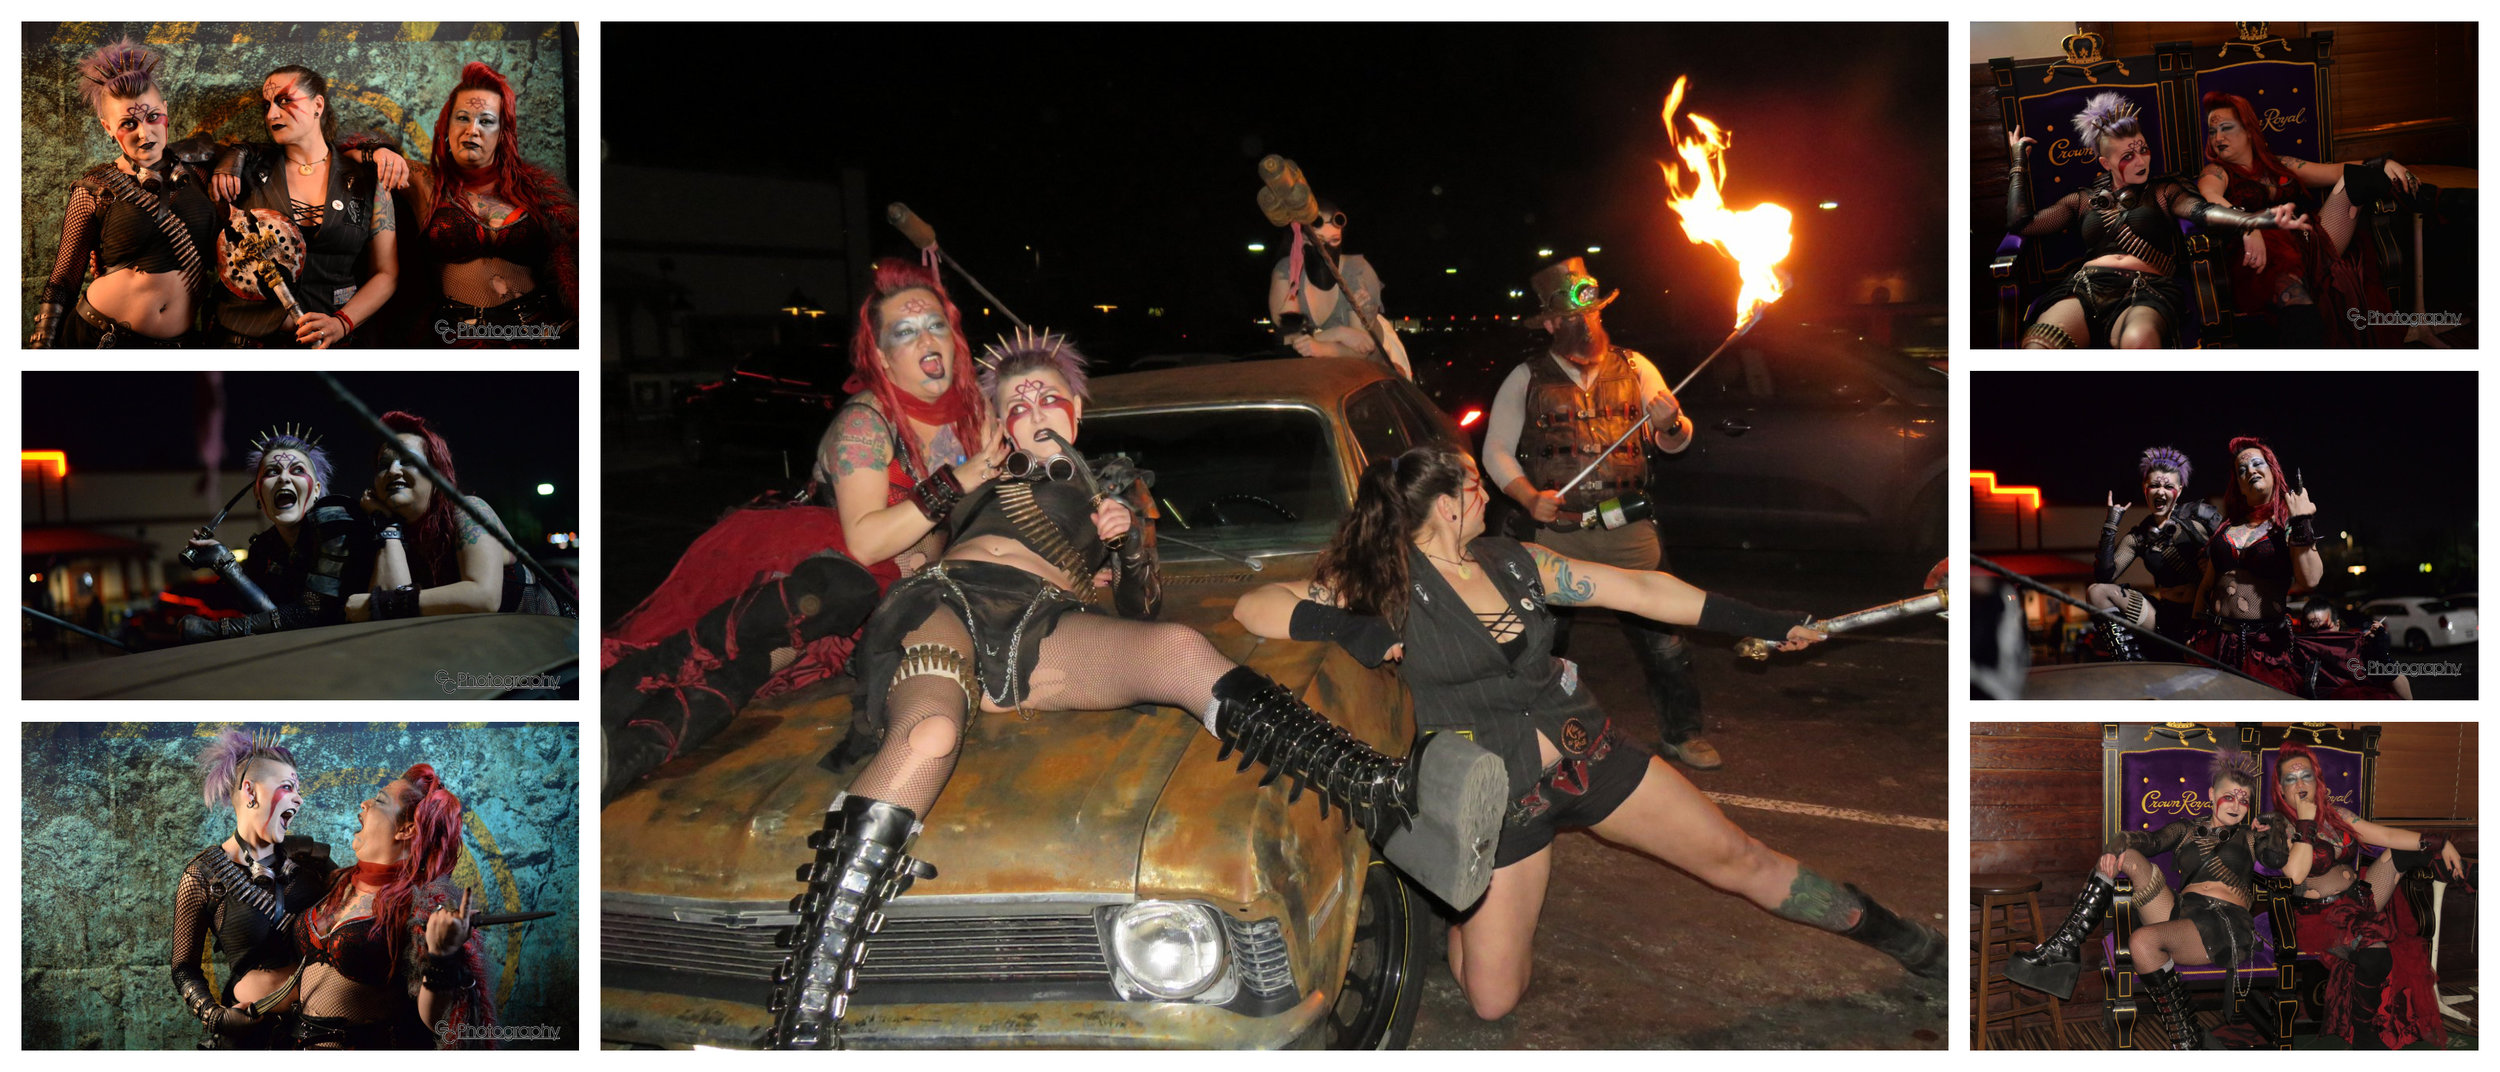 Mischief, Carnage, and Dr. Zeus, flirting with the end of the world. Cry Baby brought his car Razor Nova, and some of our Wastelanders brought the gift of fire! Photos courtesy of CG Photography and Raymond Jesse Schluter.